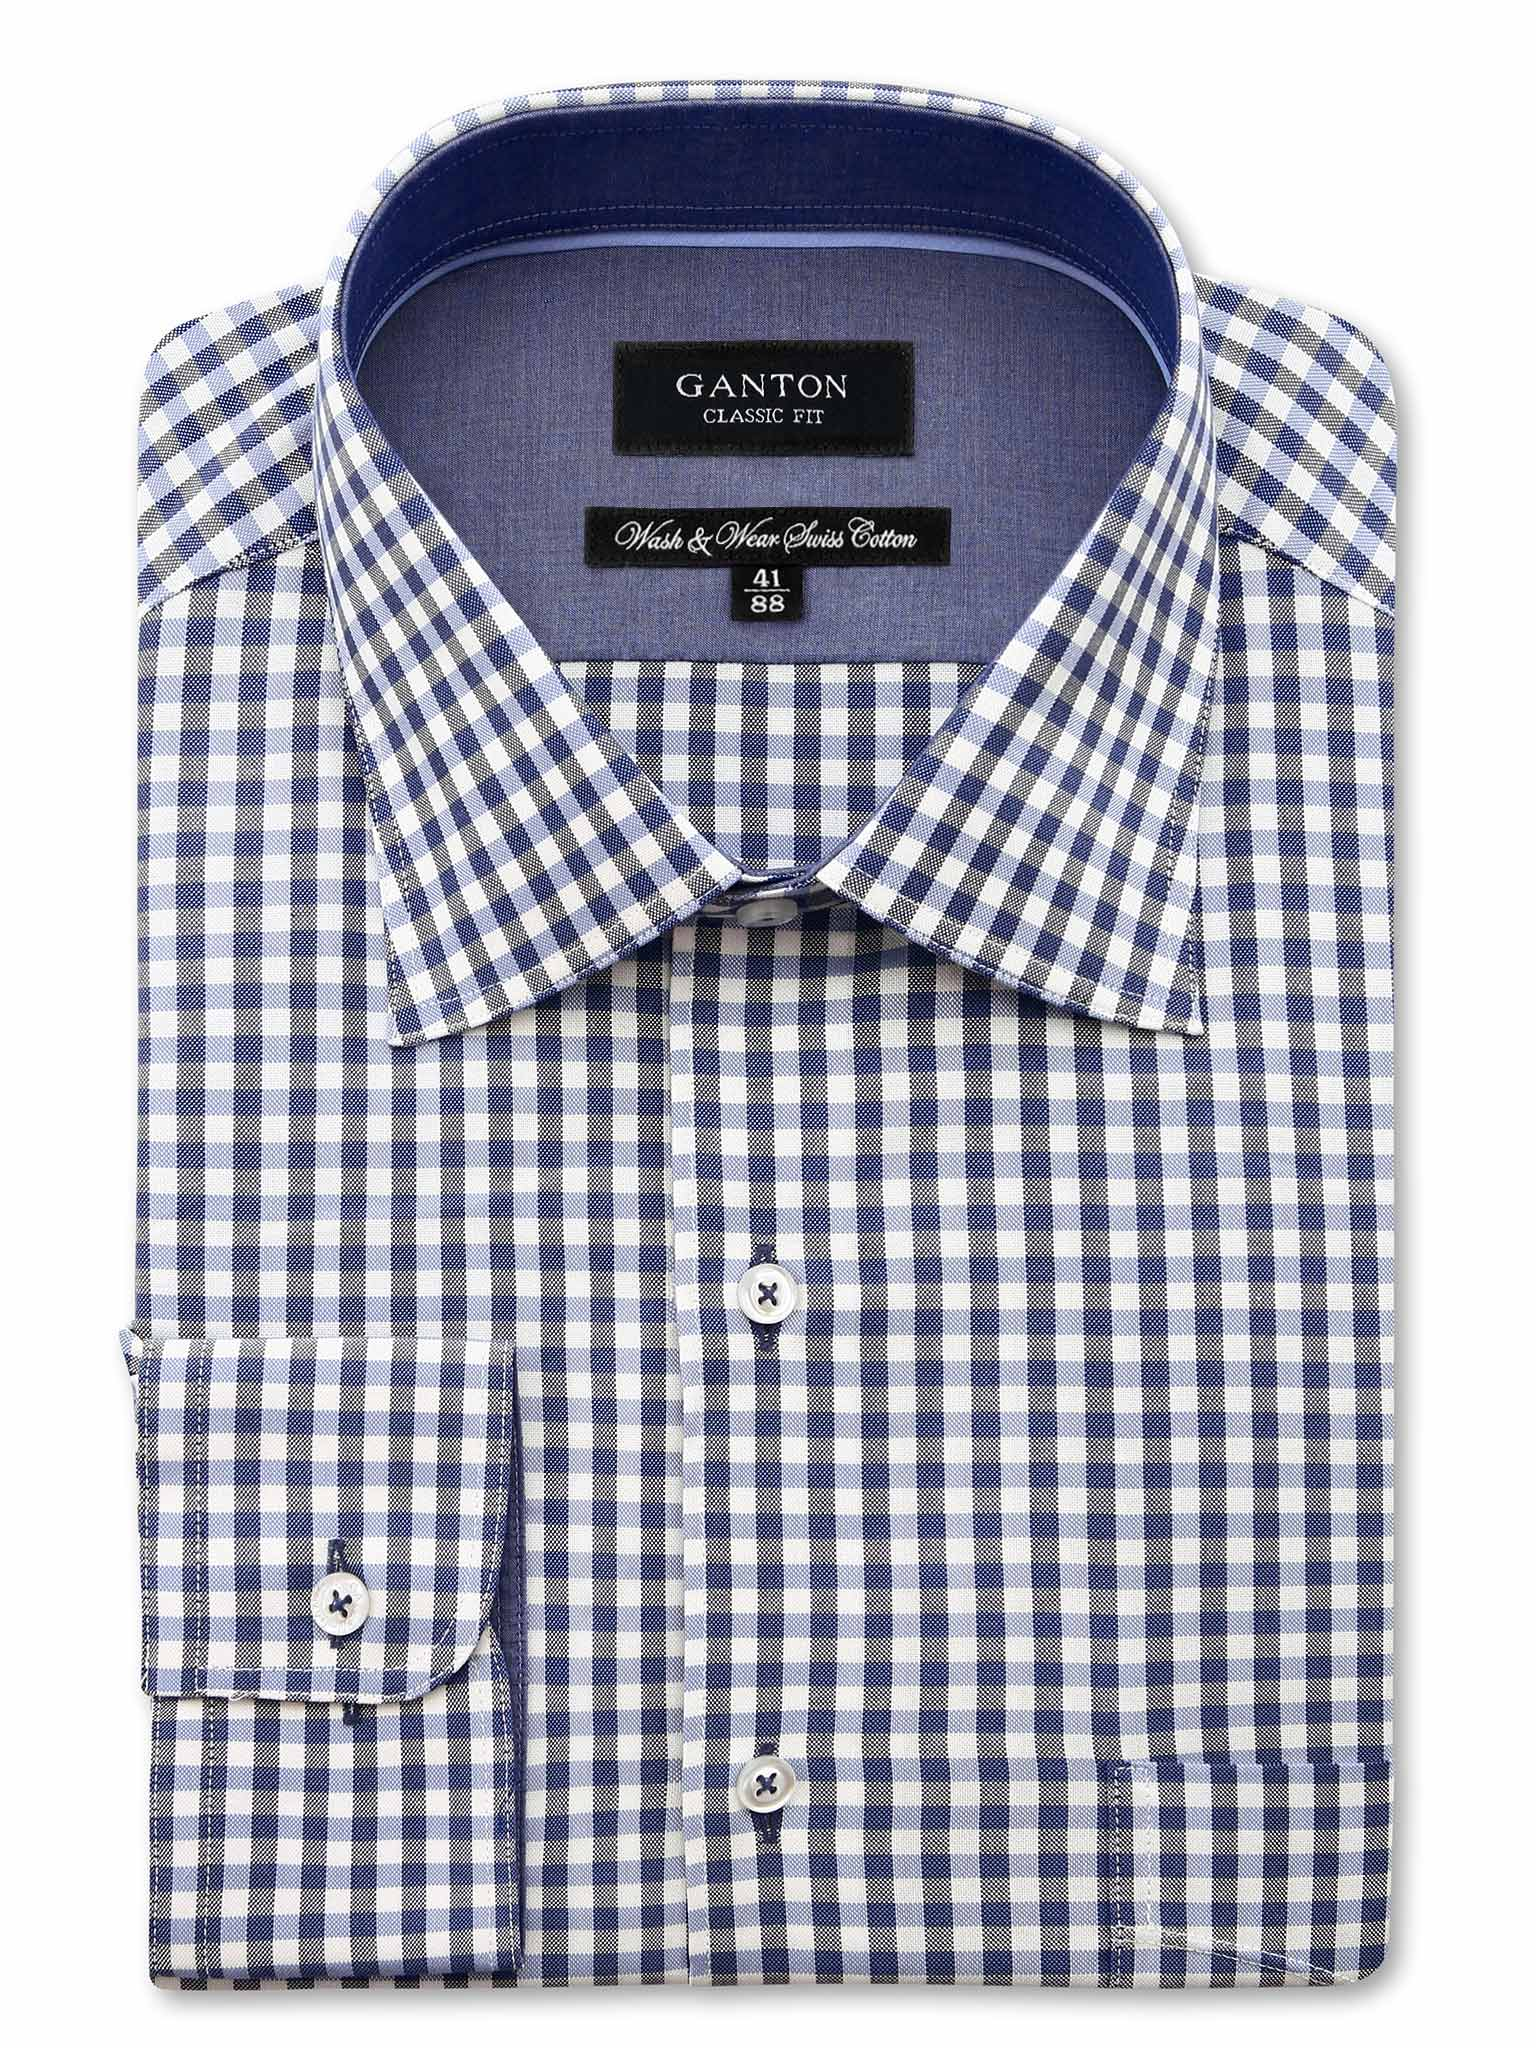 Navy Check Classic Fit Clayton Wash Wear Swiss Cotton Shirt